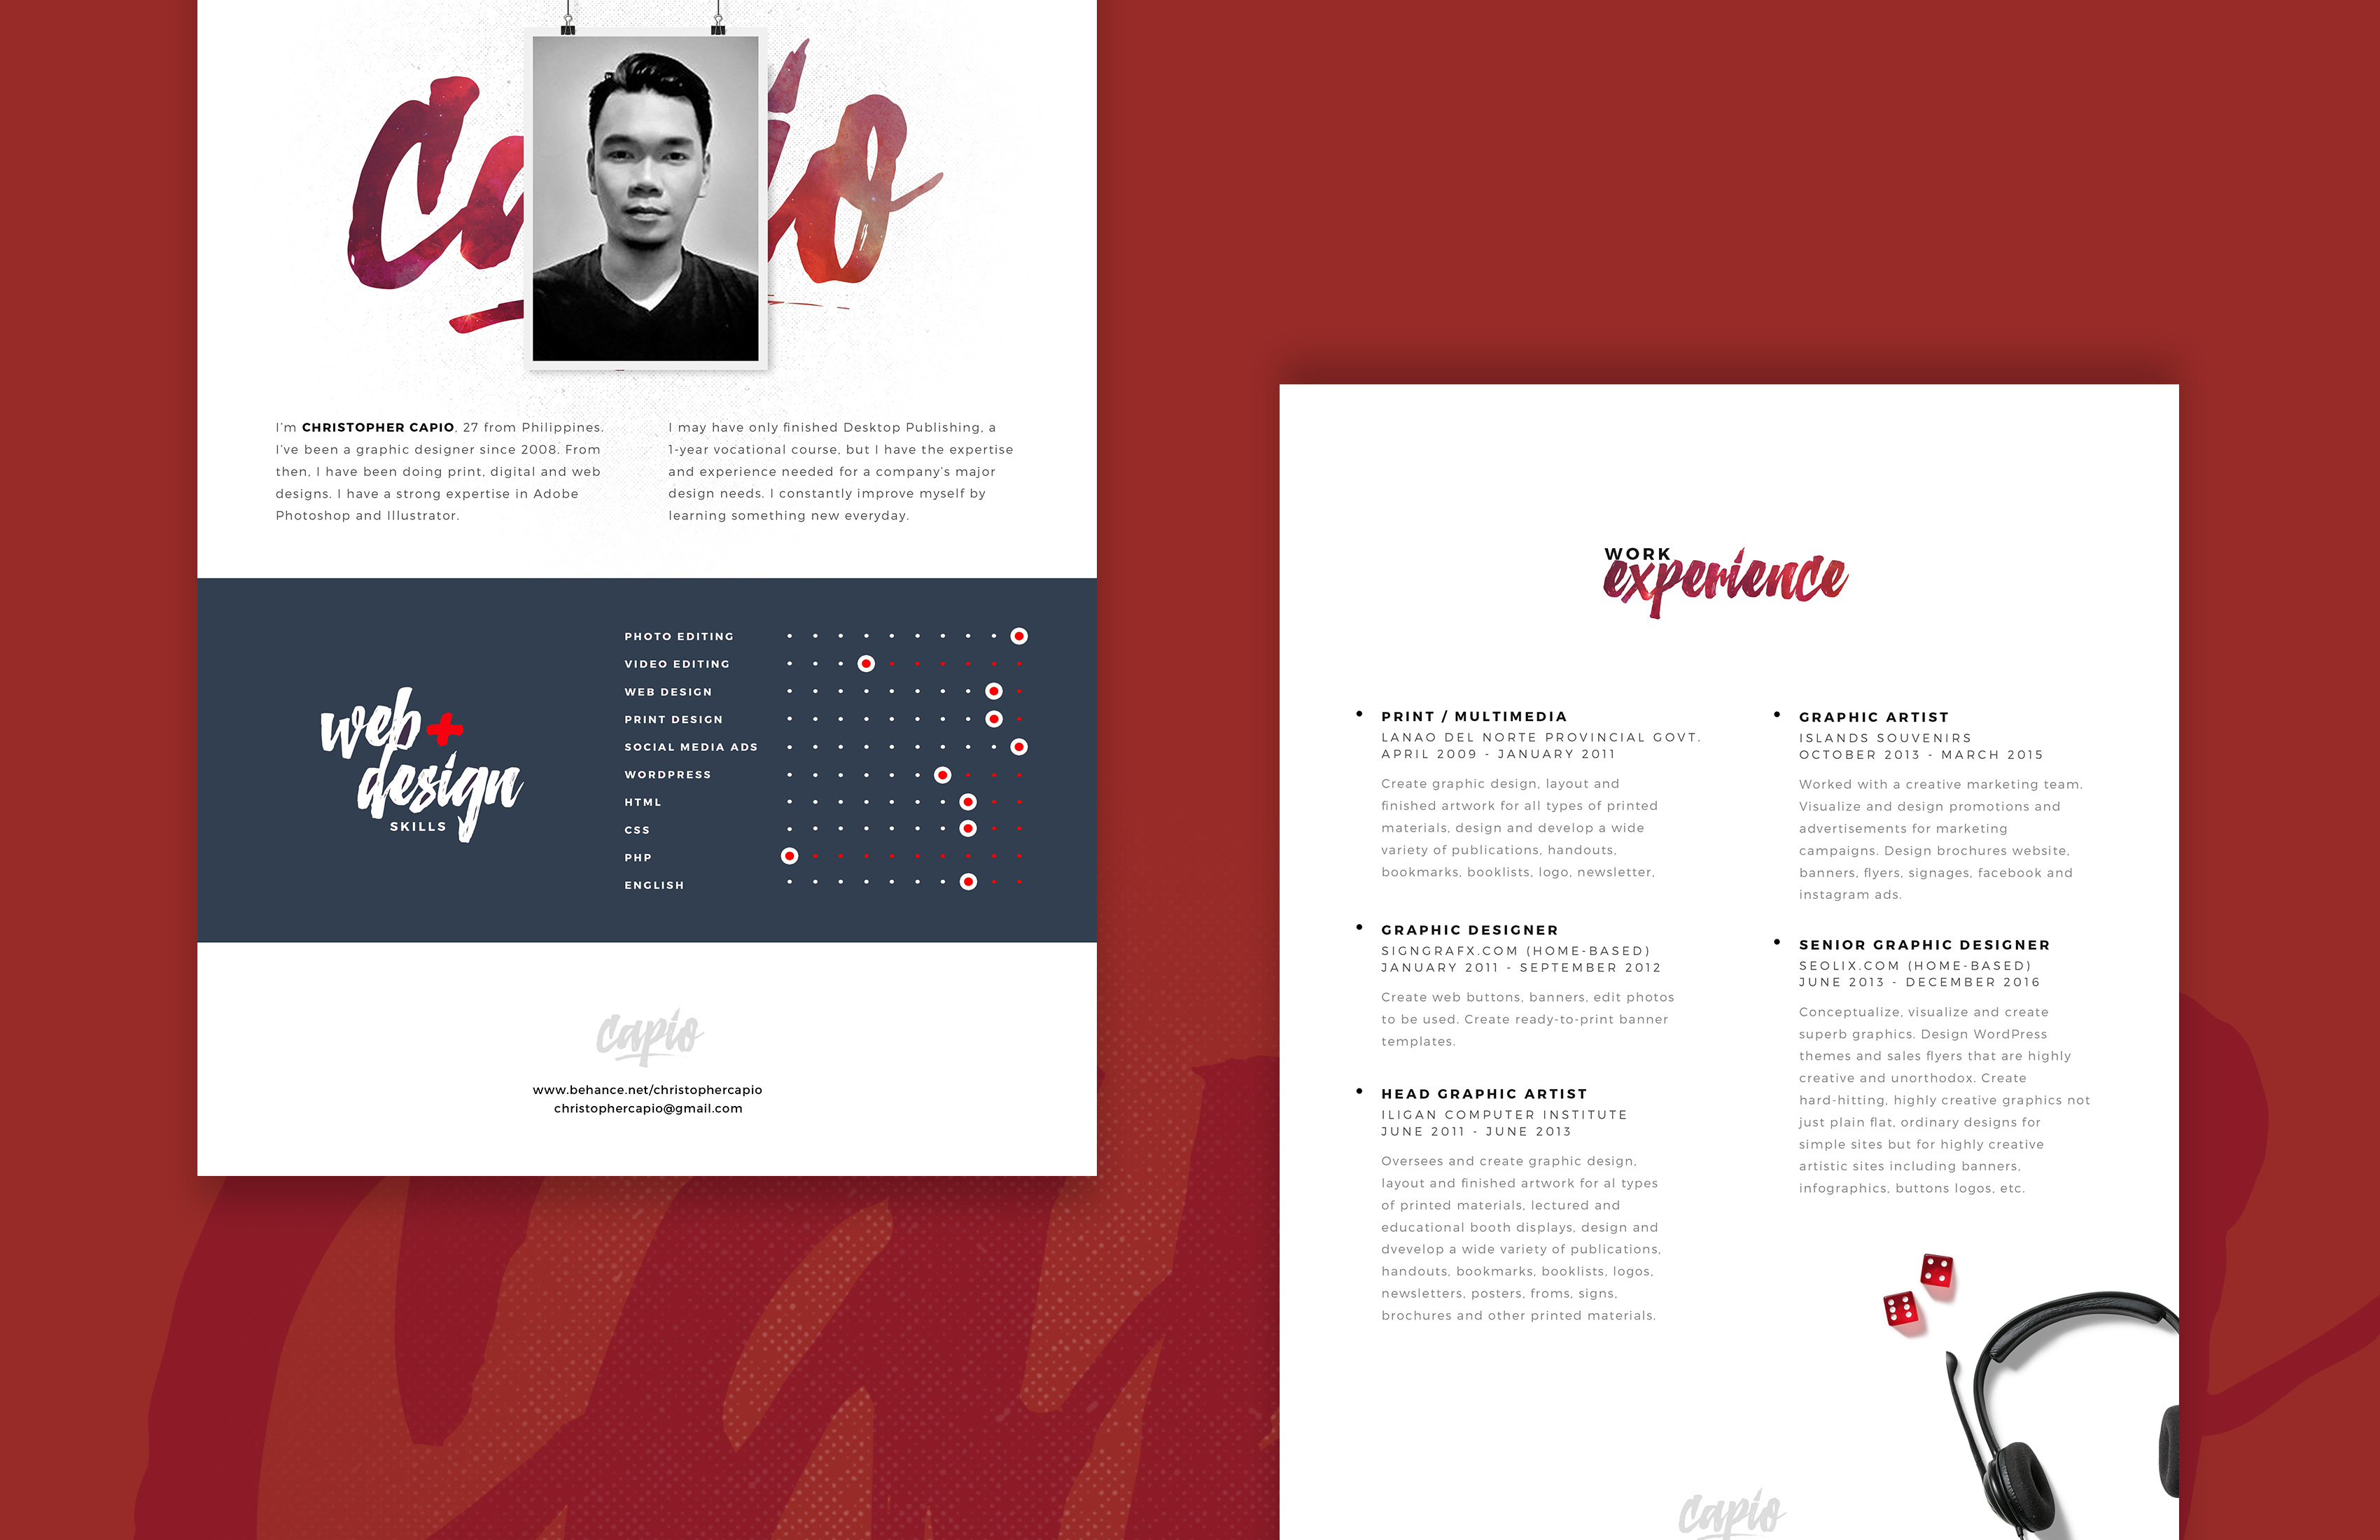 Web designer resume template free psd download download psd for Graphic designer resume template free download